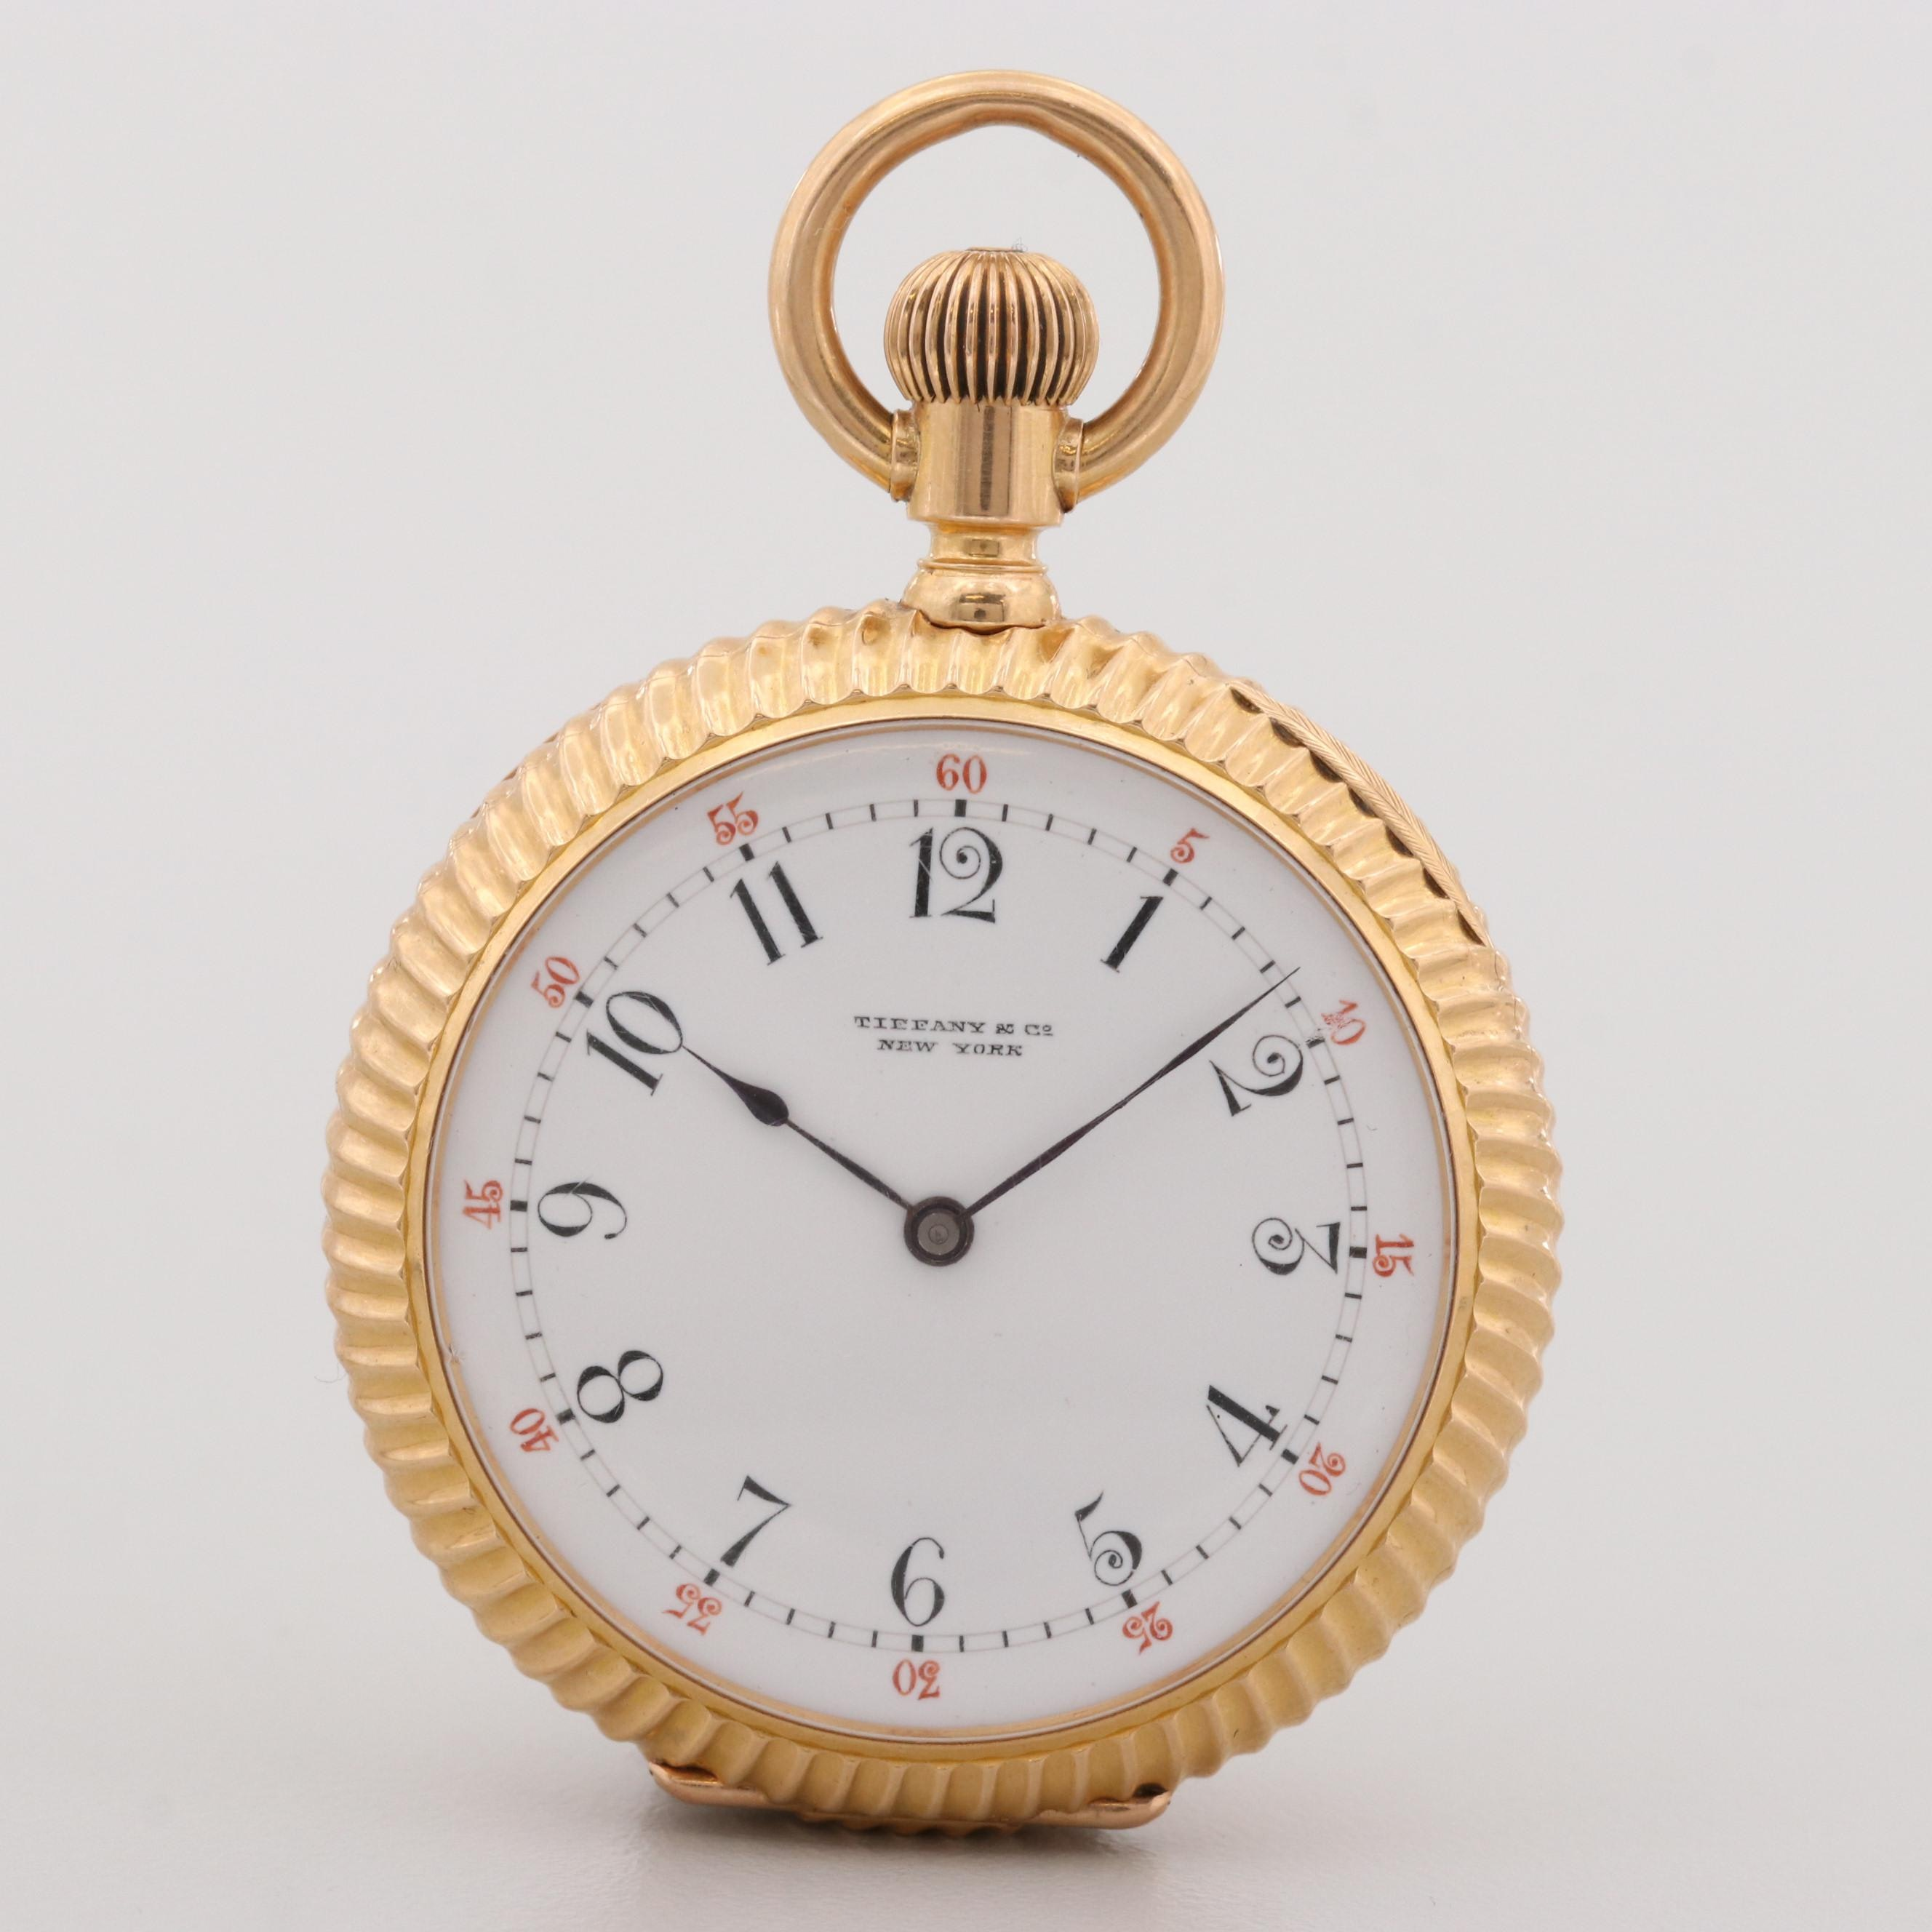 Tiffany & Co. 18K Yellow Gold New York Pocket Watch